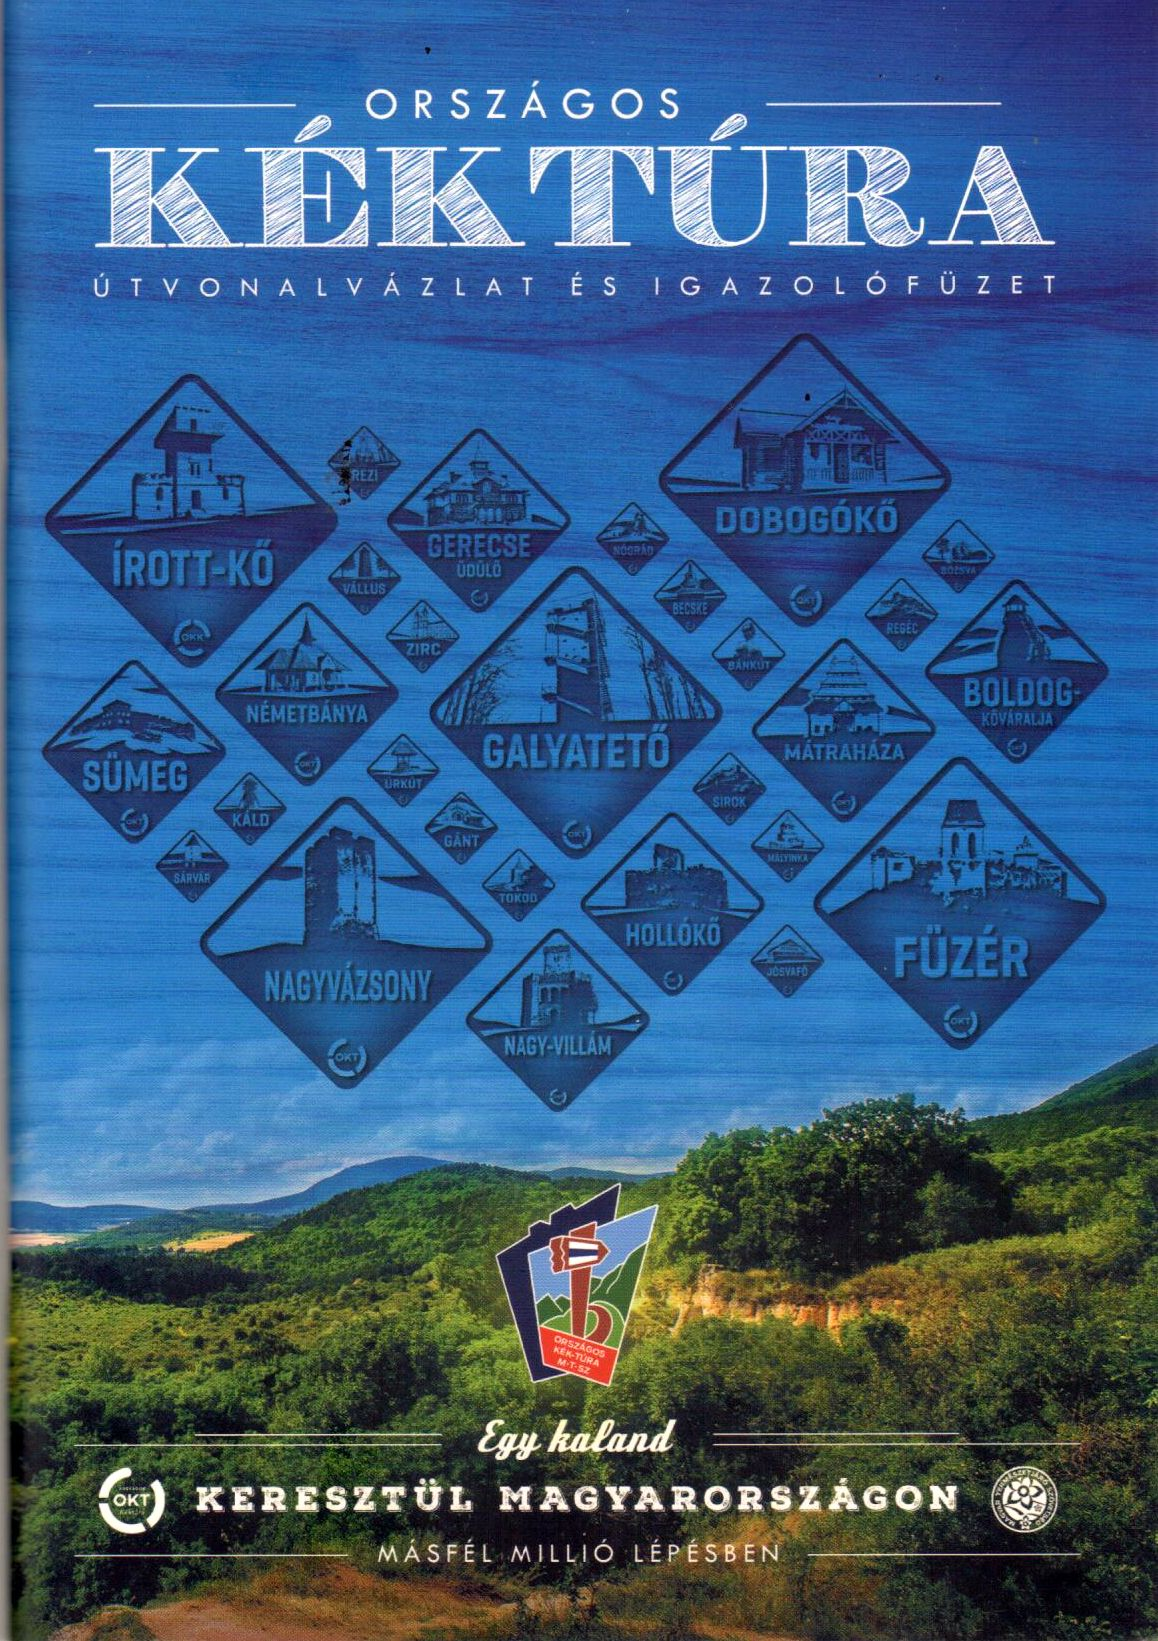 National (blue) hiking route control points with map sketches in Hungarian language